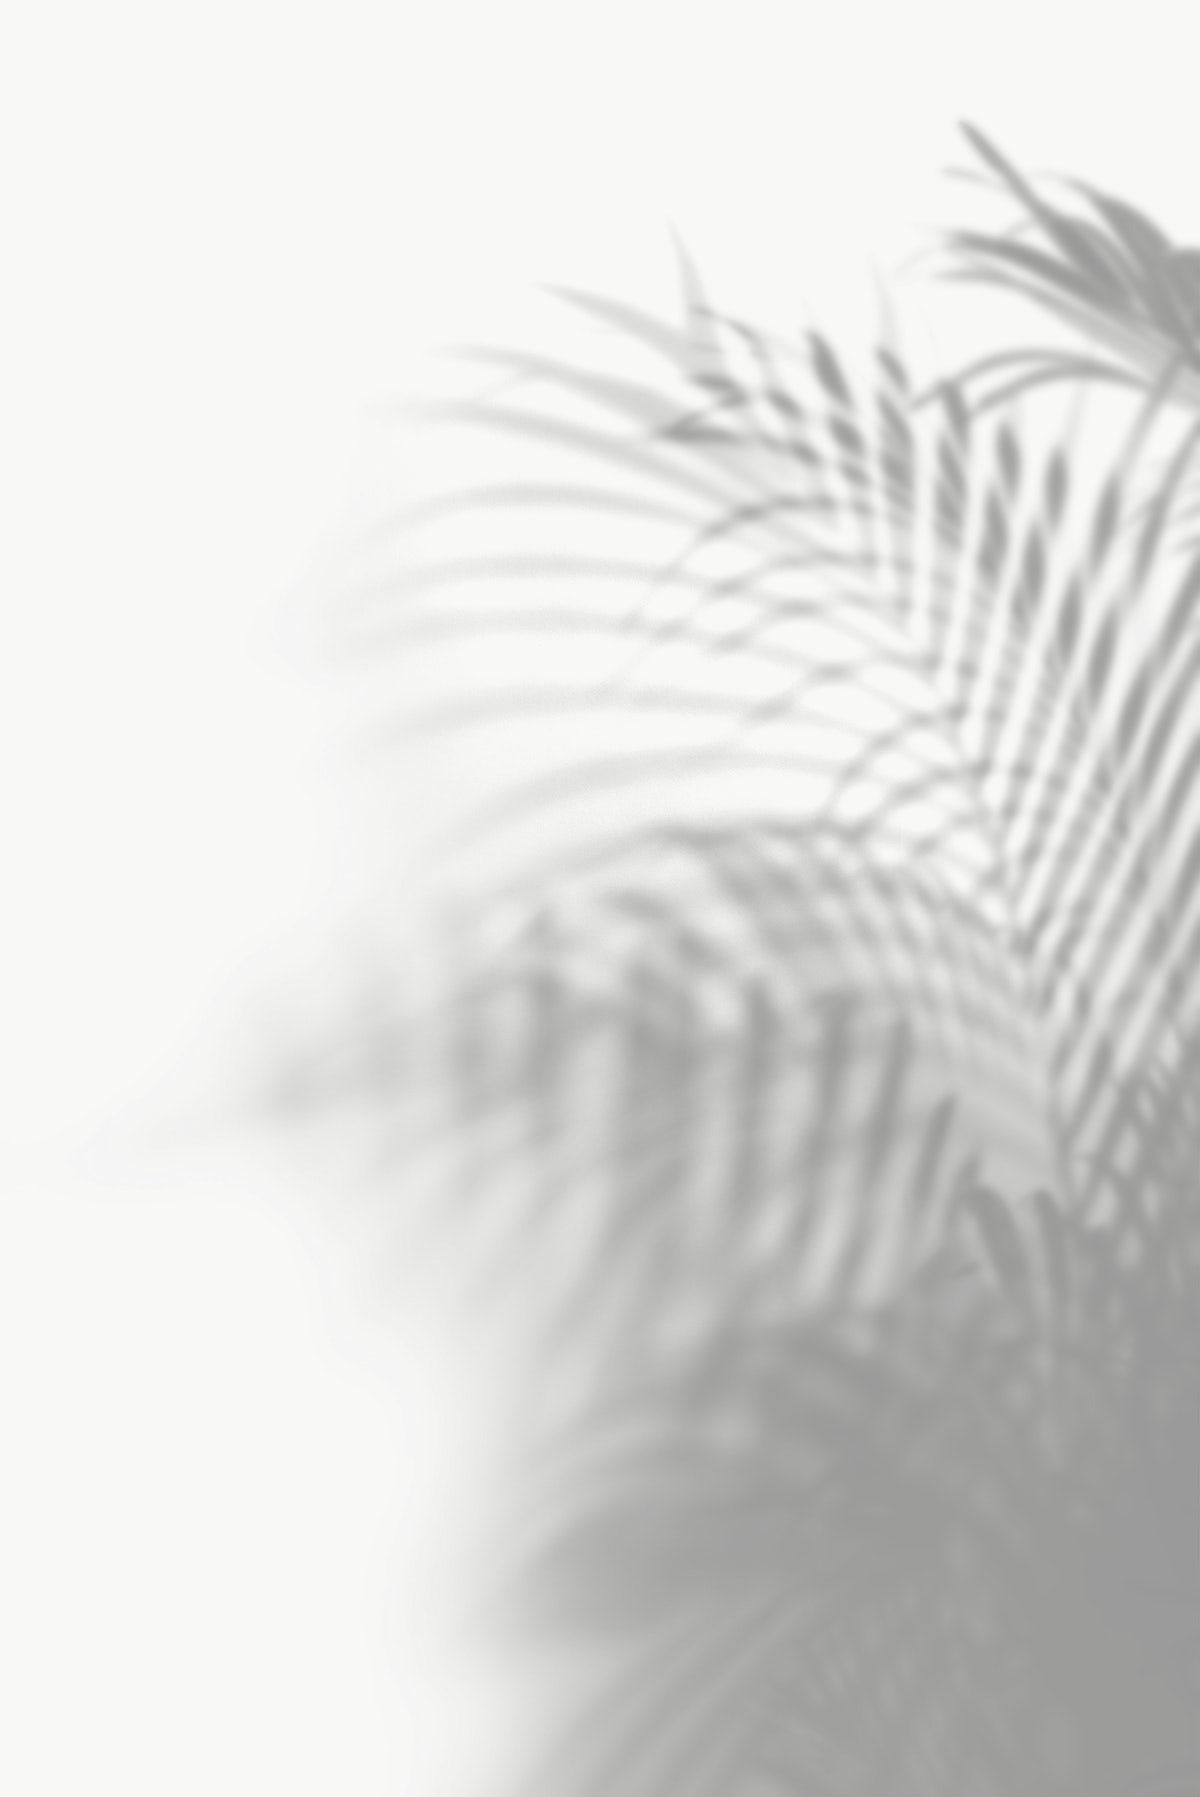 Shadow Of Palm Leaves Design Element Free Image By Rawpixel Com Jira Shadow Images White Background Images All White Background